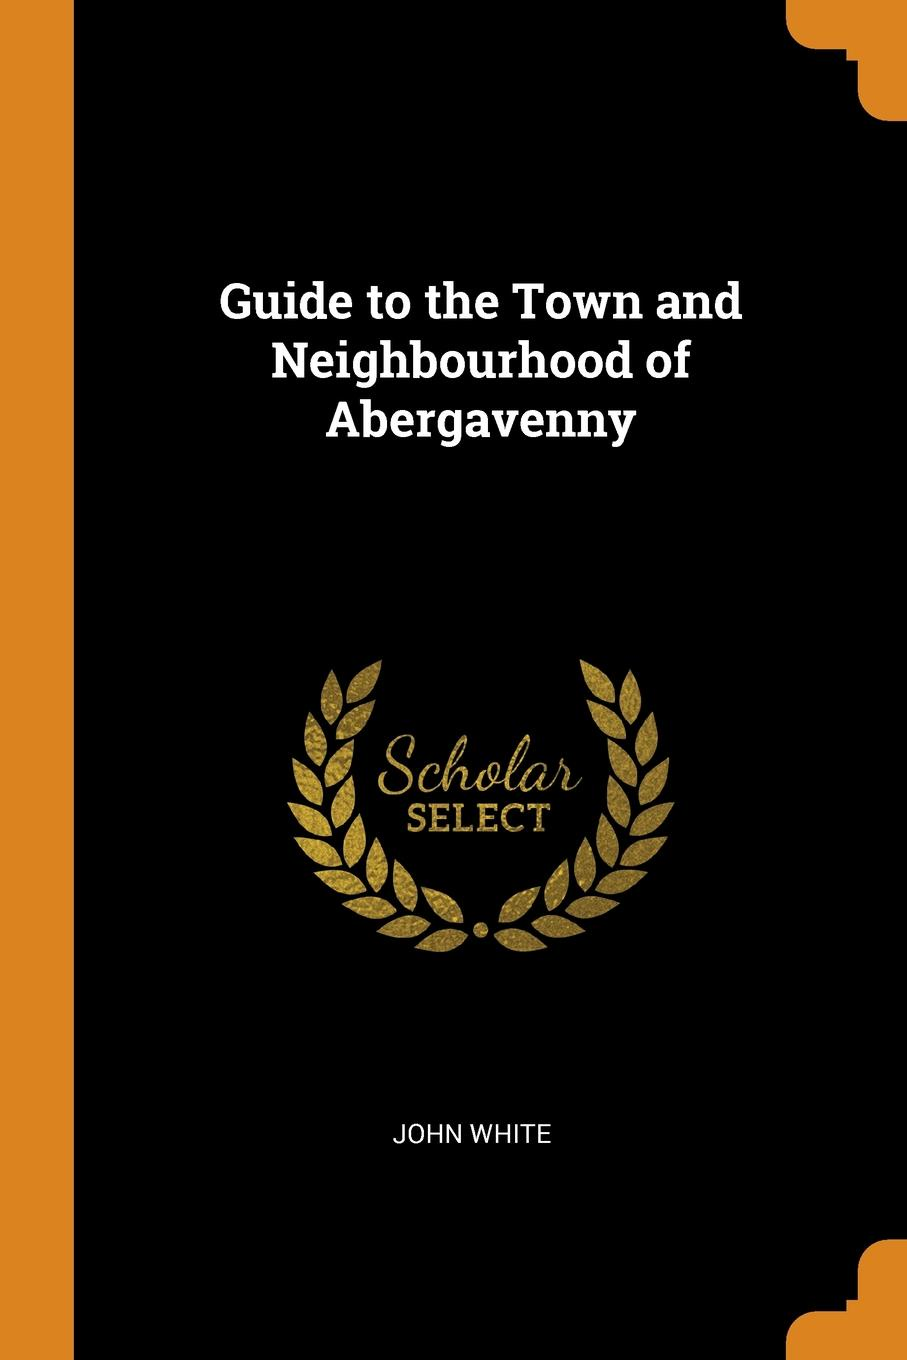 John White Guide to the Town and Neighbourhood of Abergavenny